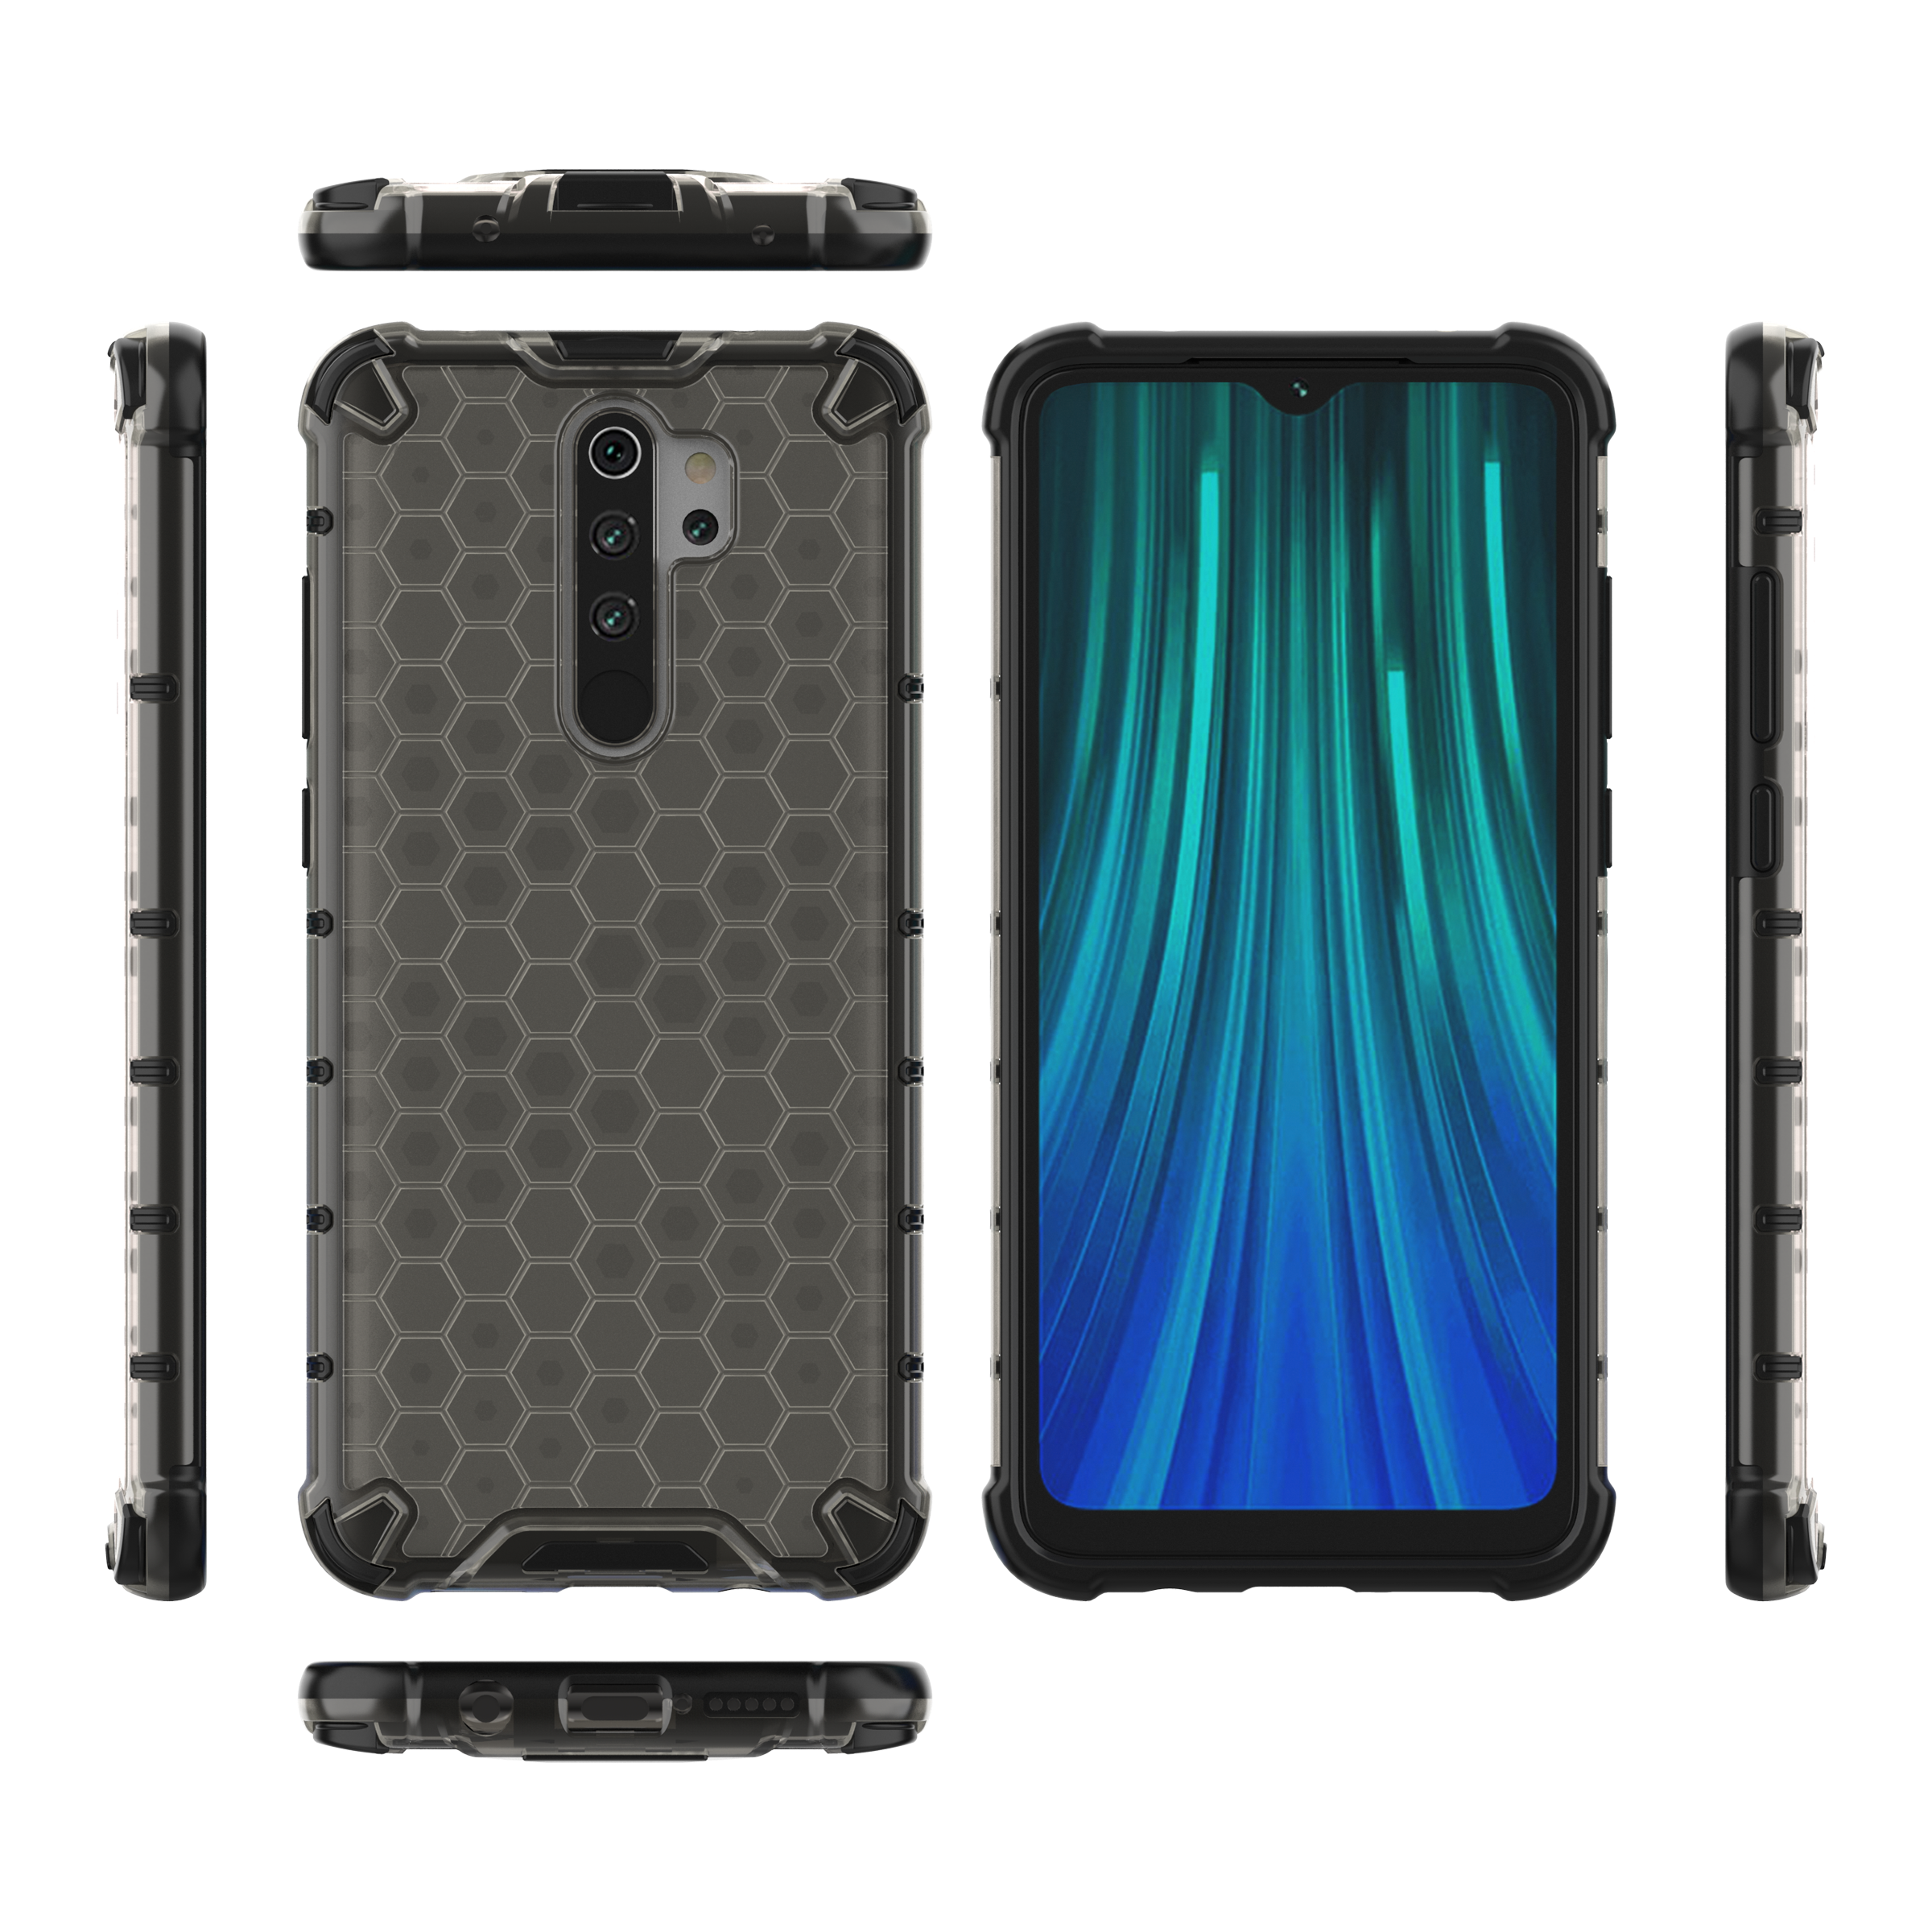 Honingraat Transparante shockproof case voor <span class=keywords><strong>Redmi</strong></span> <span class=keywords><strong>note</strong></span> <span class=keywords><strong>8</strong></span>, anti shock case voor <span class=keywords><strong>Redmi</strong></span> <span class=keywords><strong>note</strong></span> <span class=keywords><strong>8</strong></span>